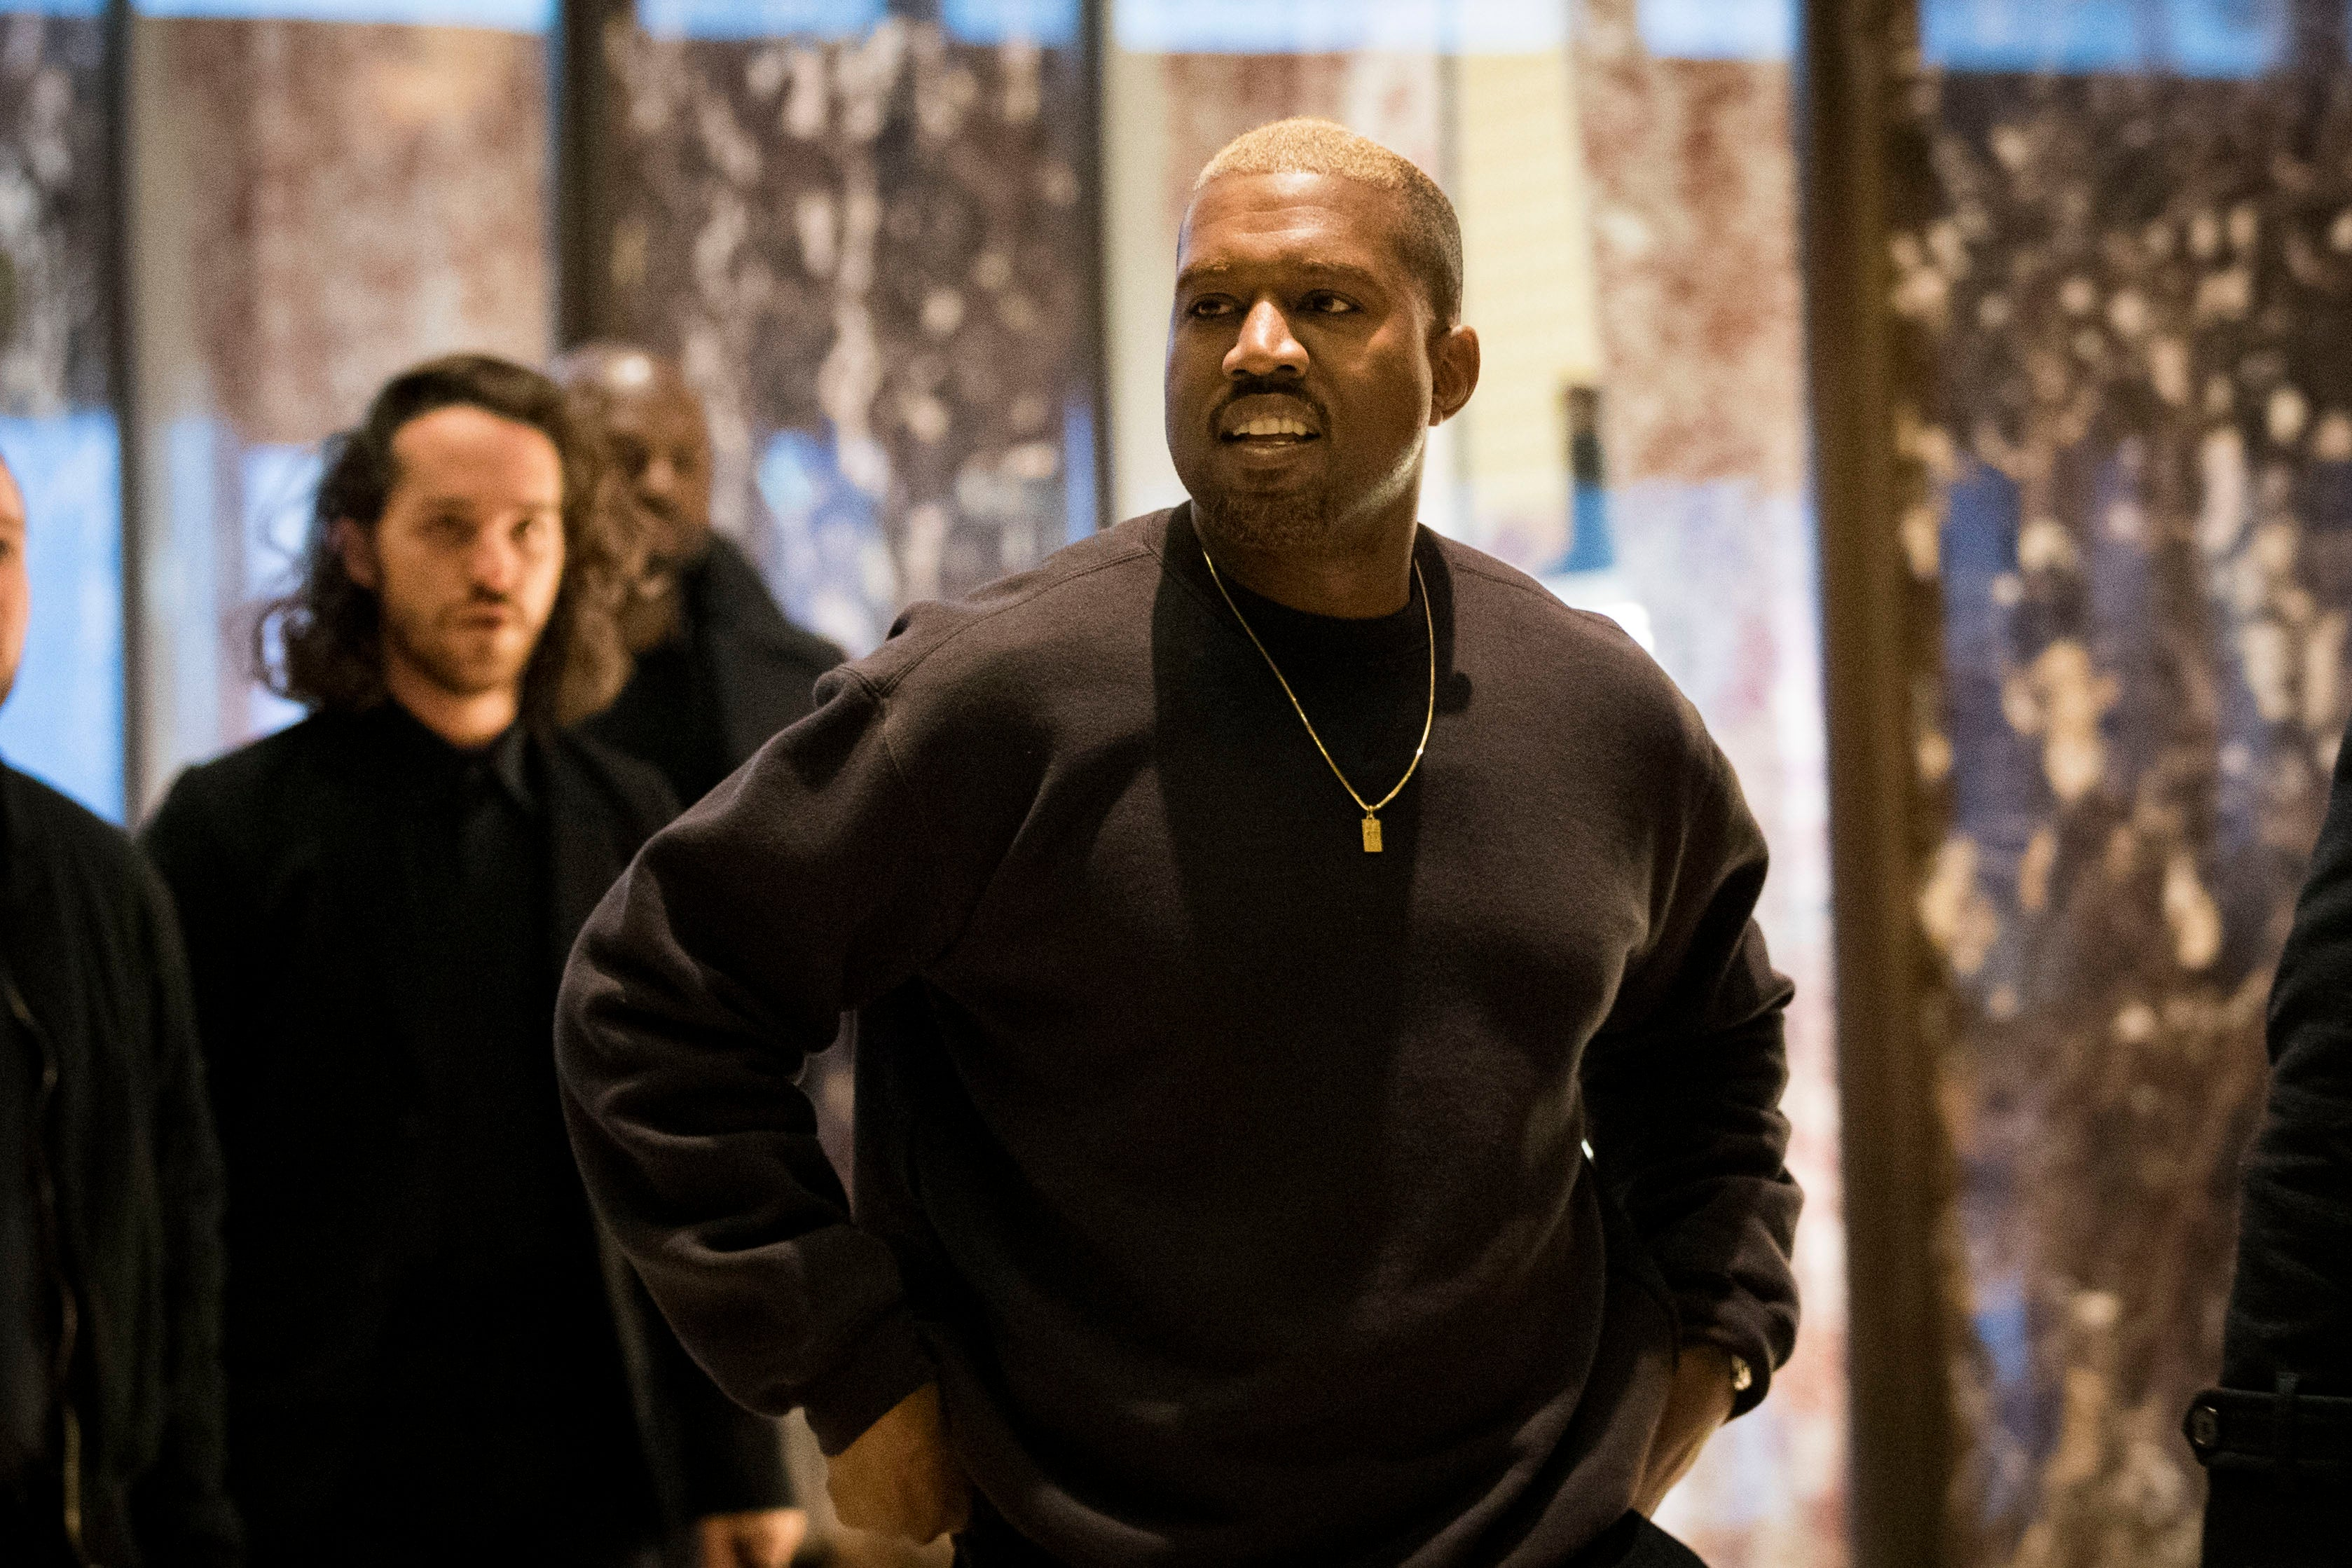 About That Other Kanye Comment: WestAdmits He Struggled With Opioid Addiction After Liposuction